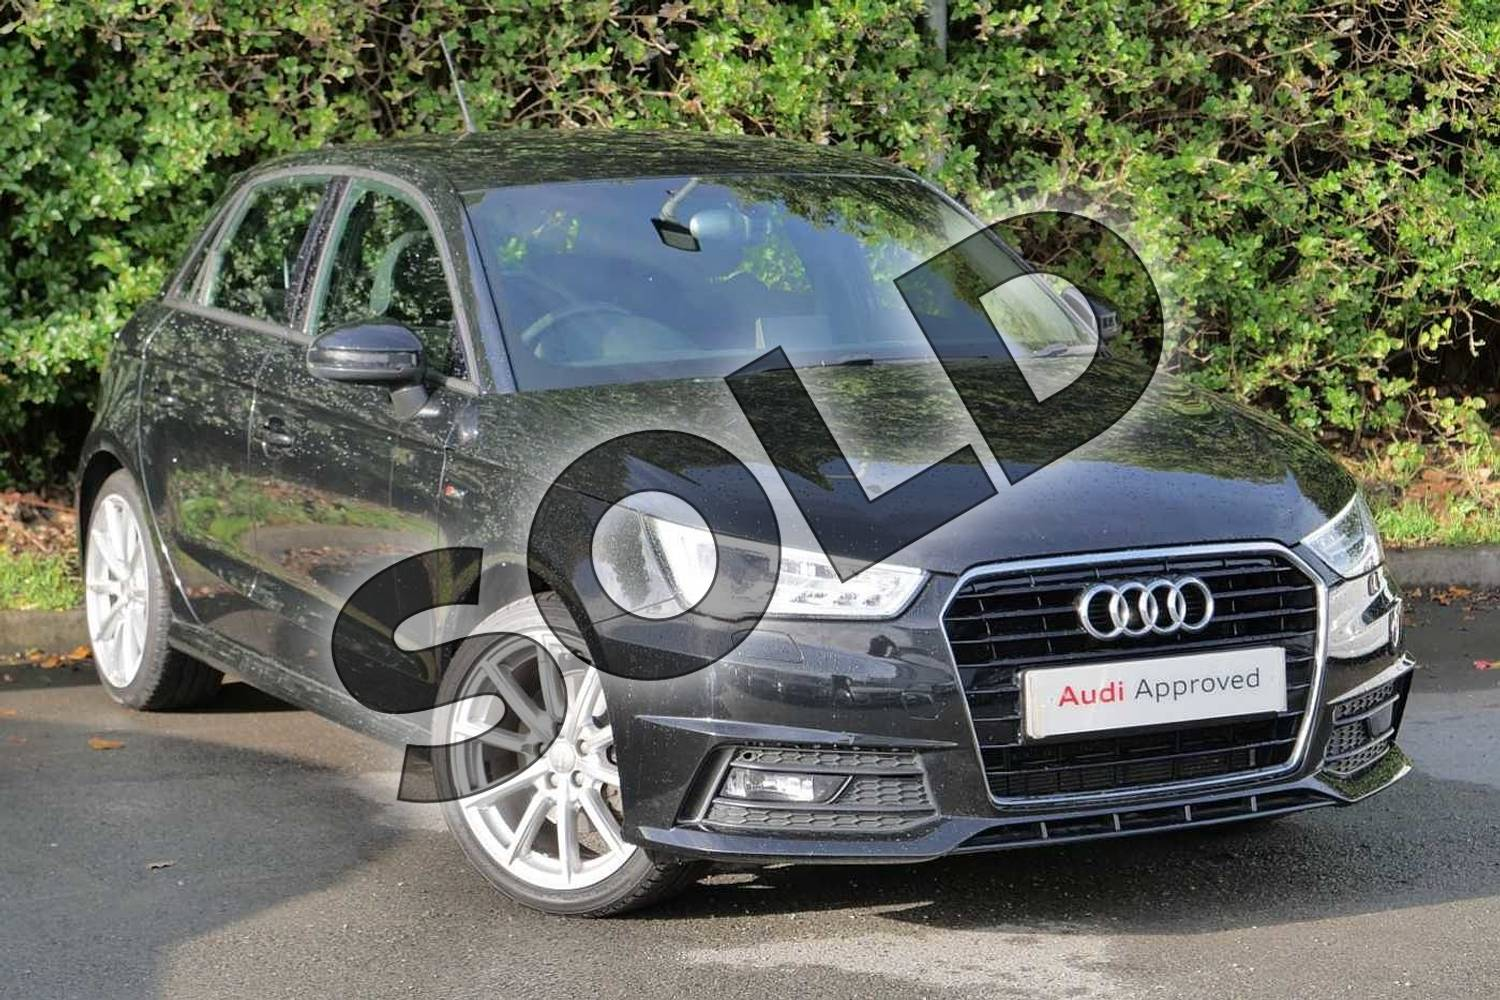 2015 Audi A1 Sportback 1.4 TFSI 150 S Line 5dr in Mythos Black, metallic at Worcester Audi